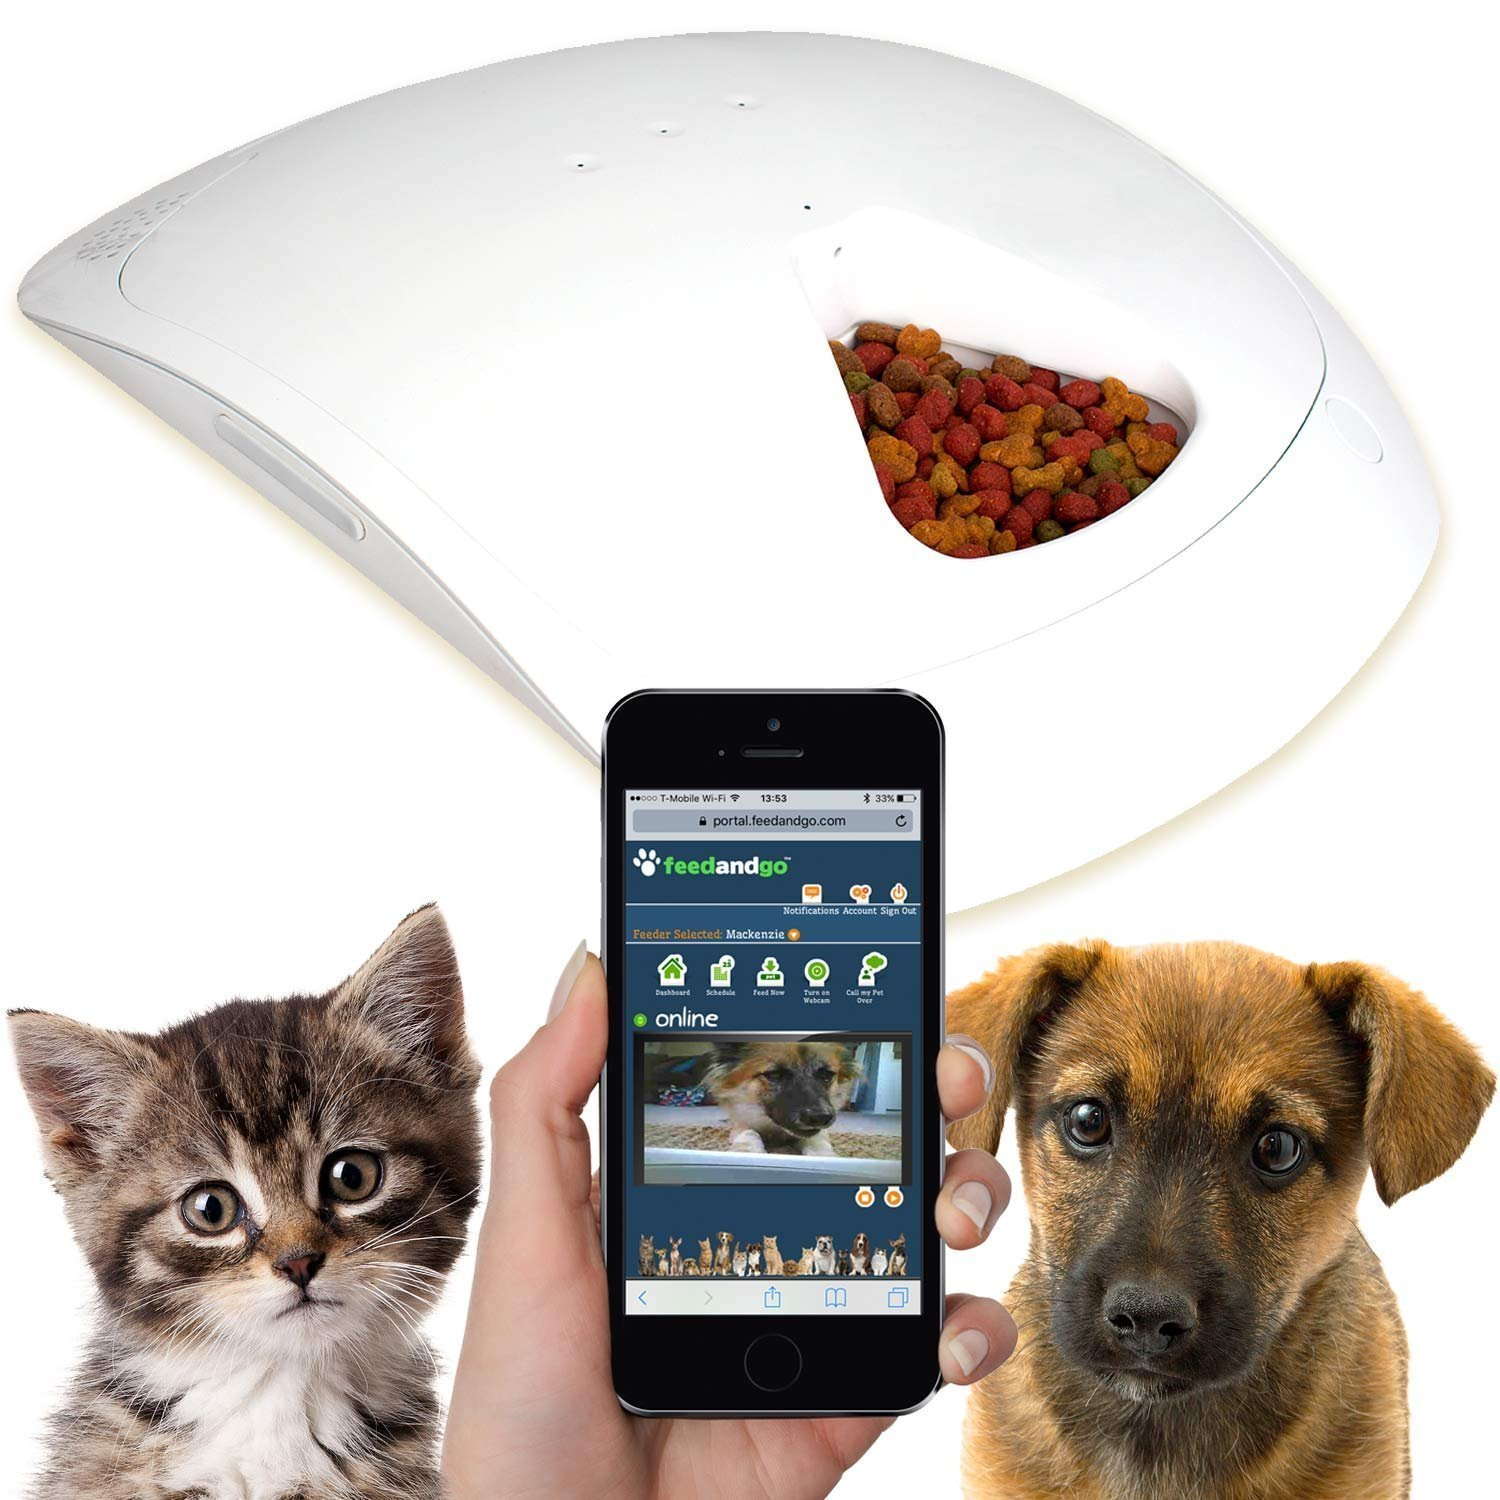 Feed and Go Smart Pet Feeder 2018 Model Now With iOS/Android Apps. Built In Webcam. For Wet/Dry Food, Treats & Meds